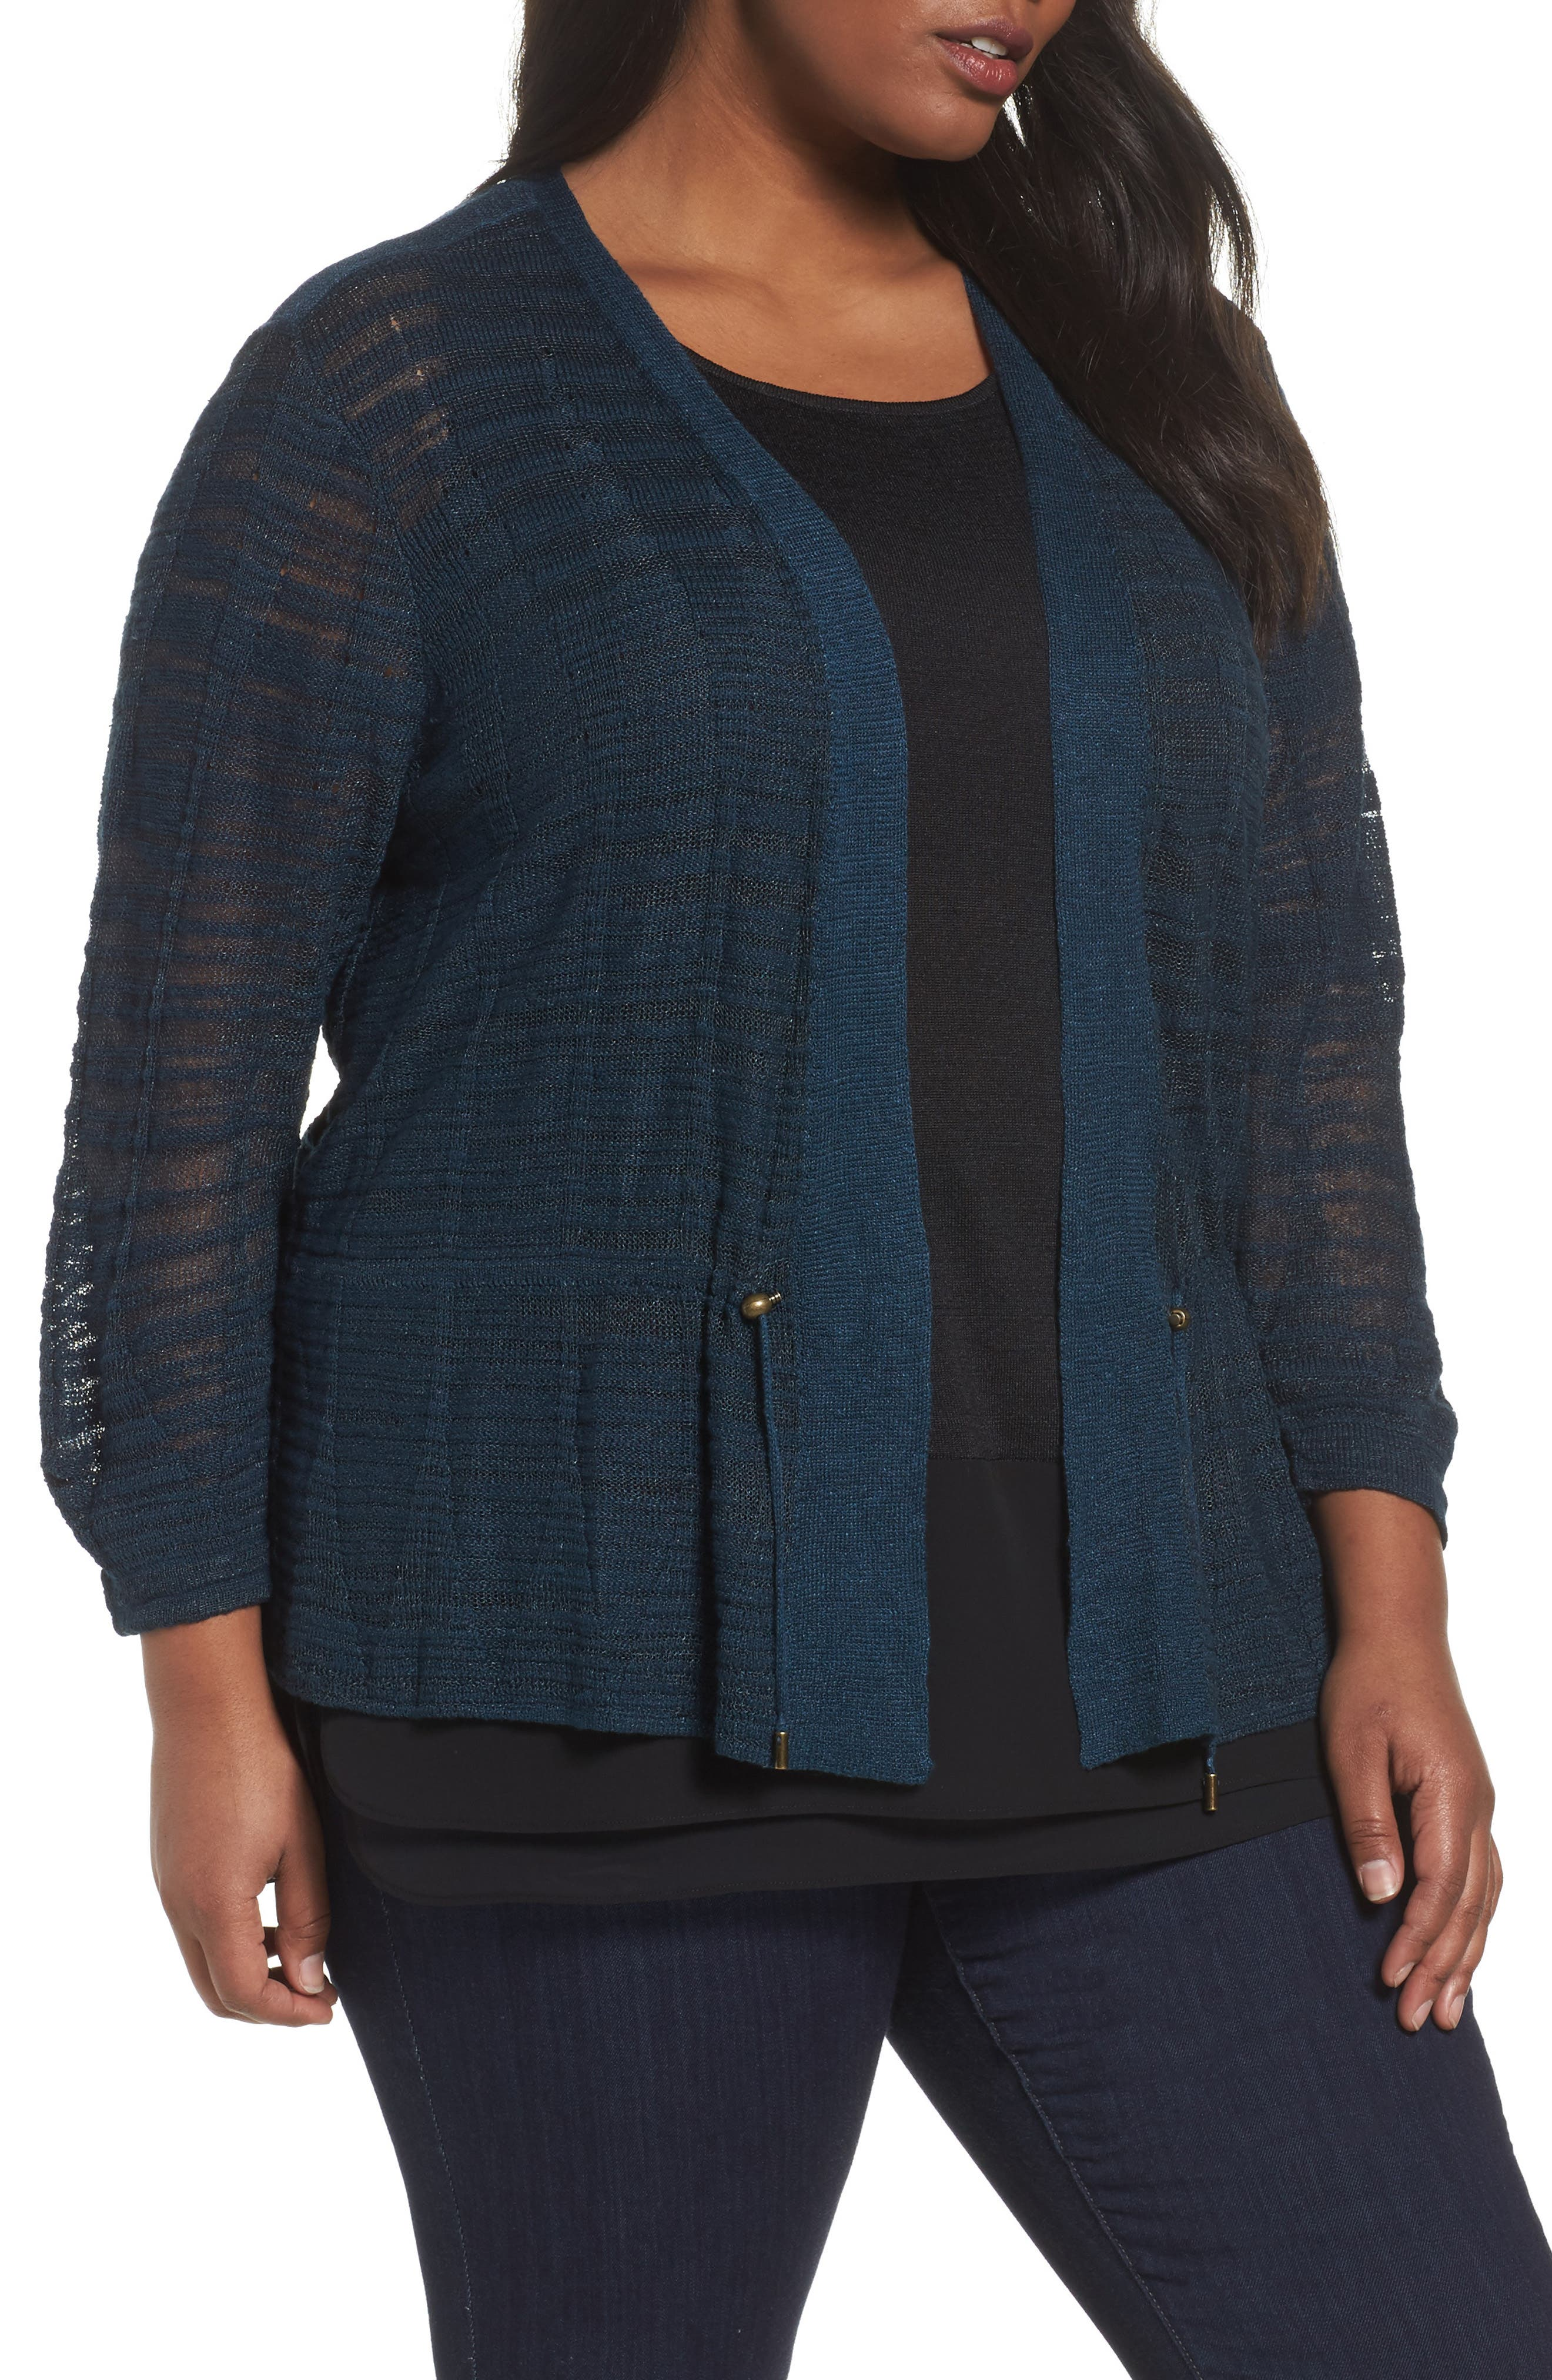 NIC+ZOE Cinched Knit Cardigan (Plus Size)